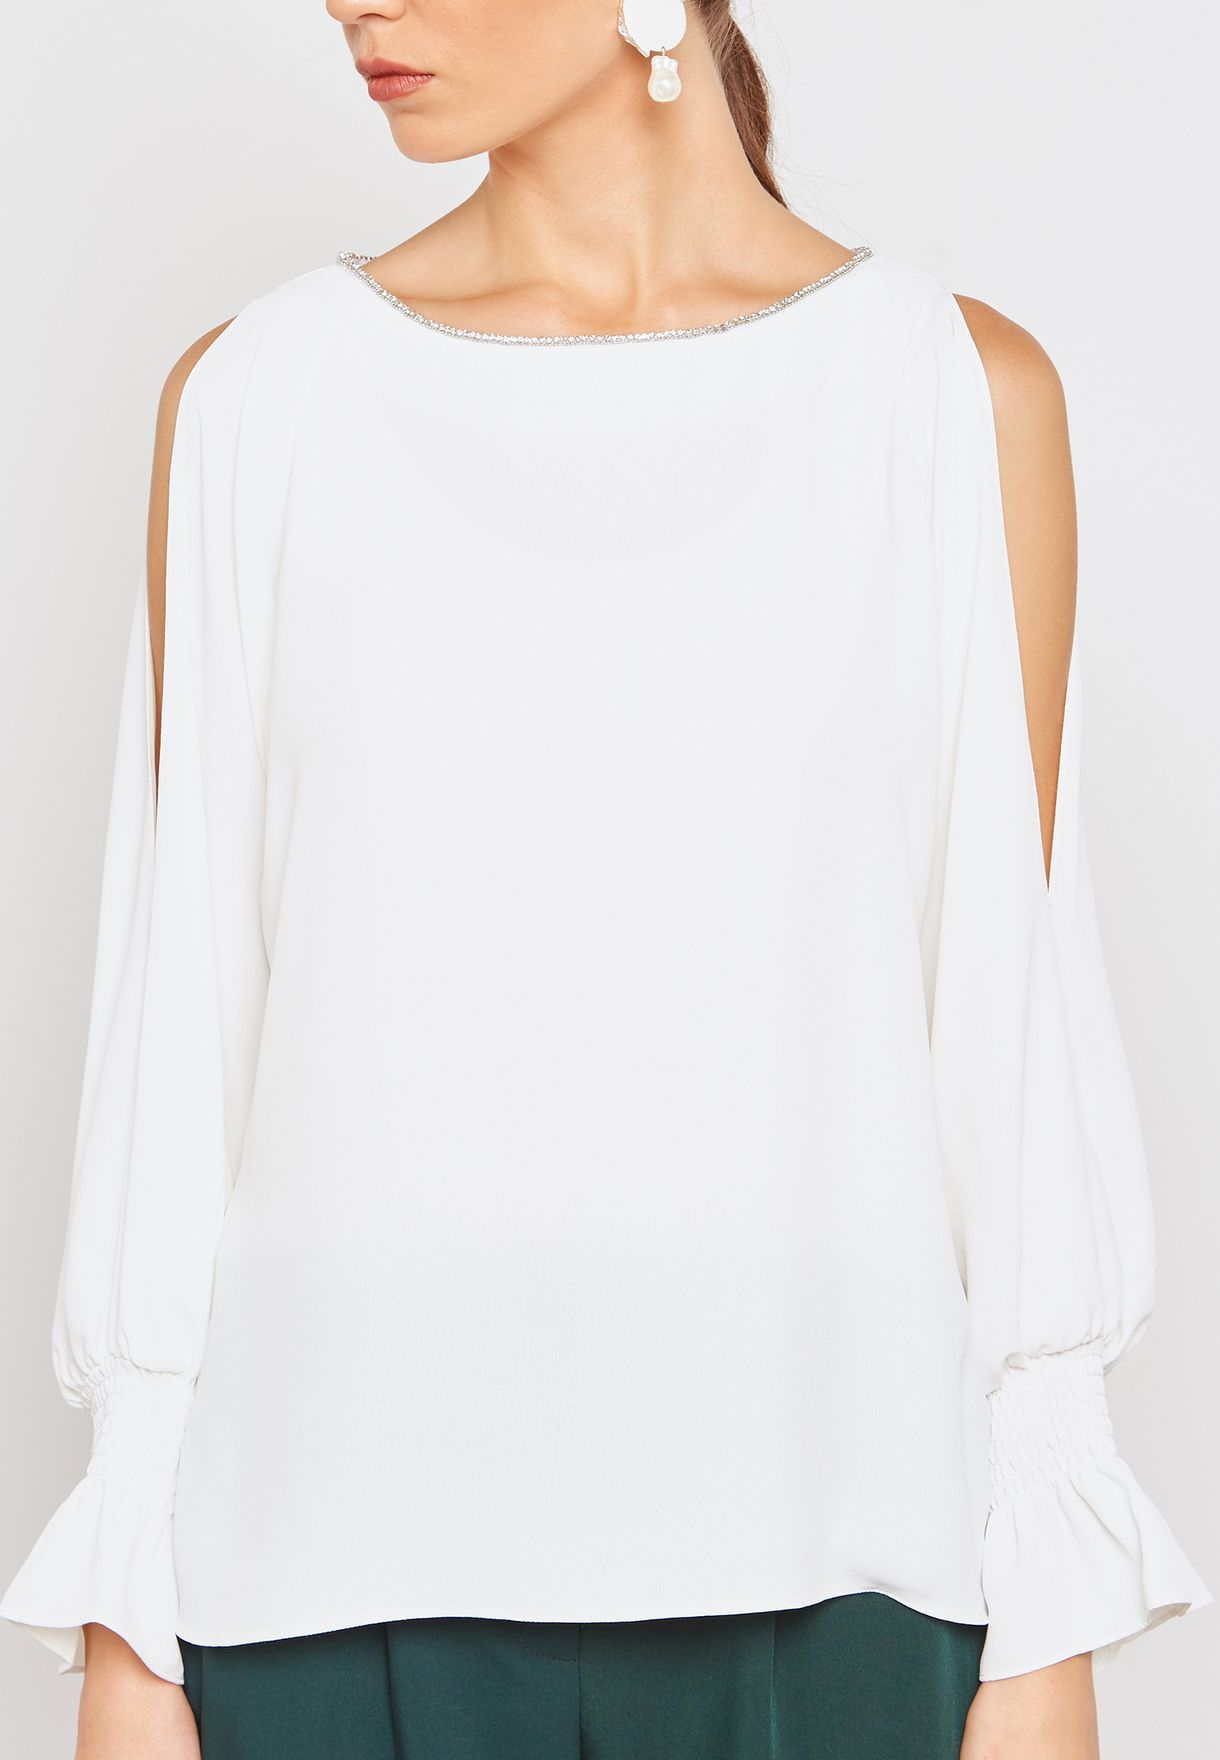 Embellished Neck Sleeve Cut Out Top